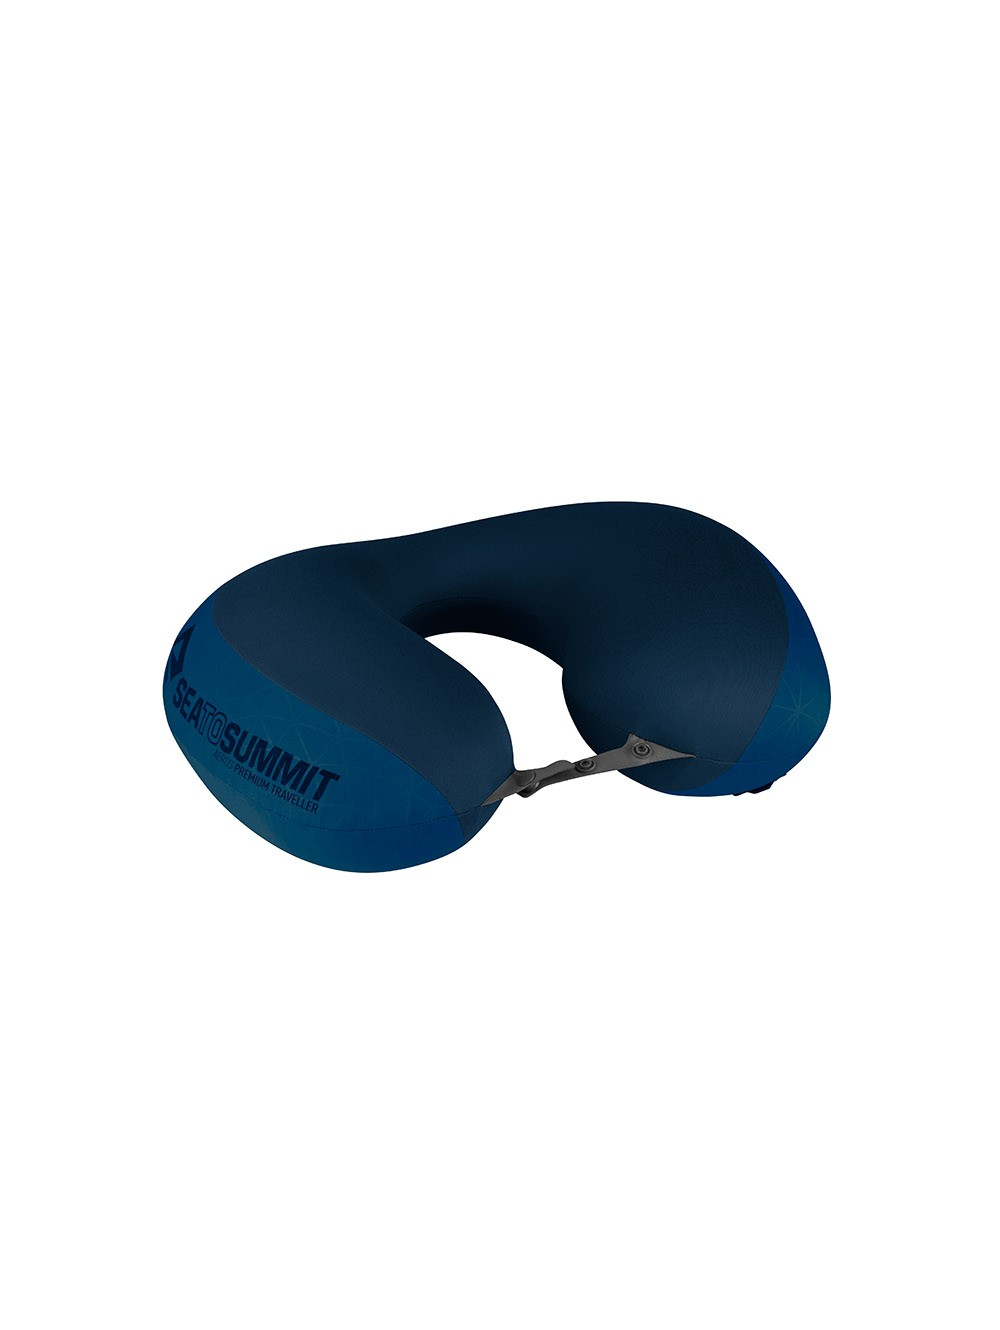 Aeros Ultalight Pillow Sea to Summit